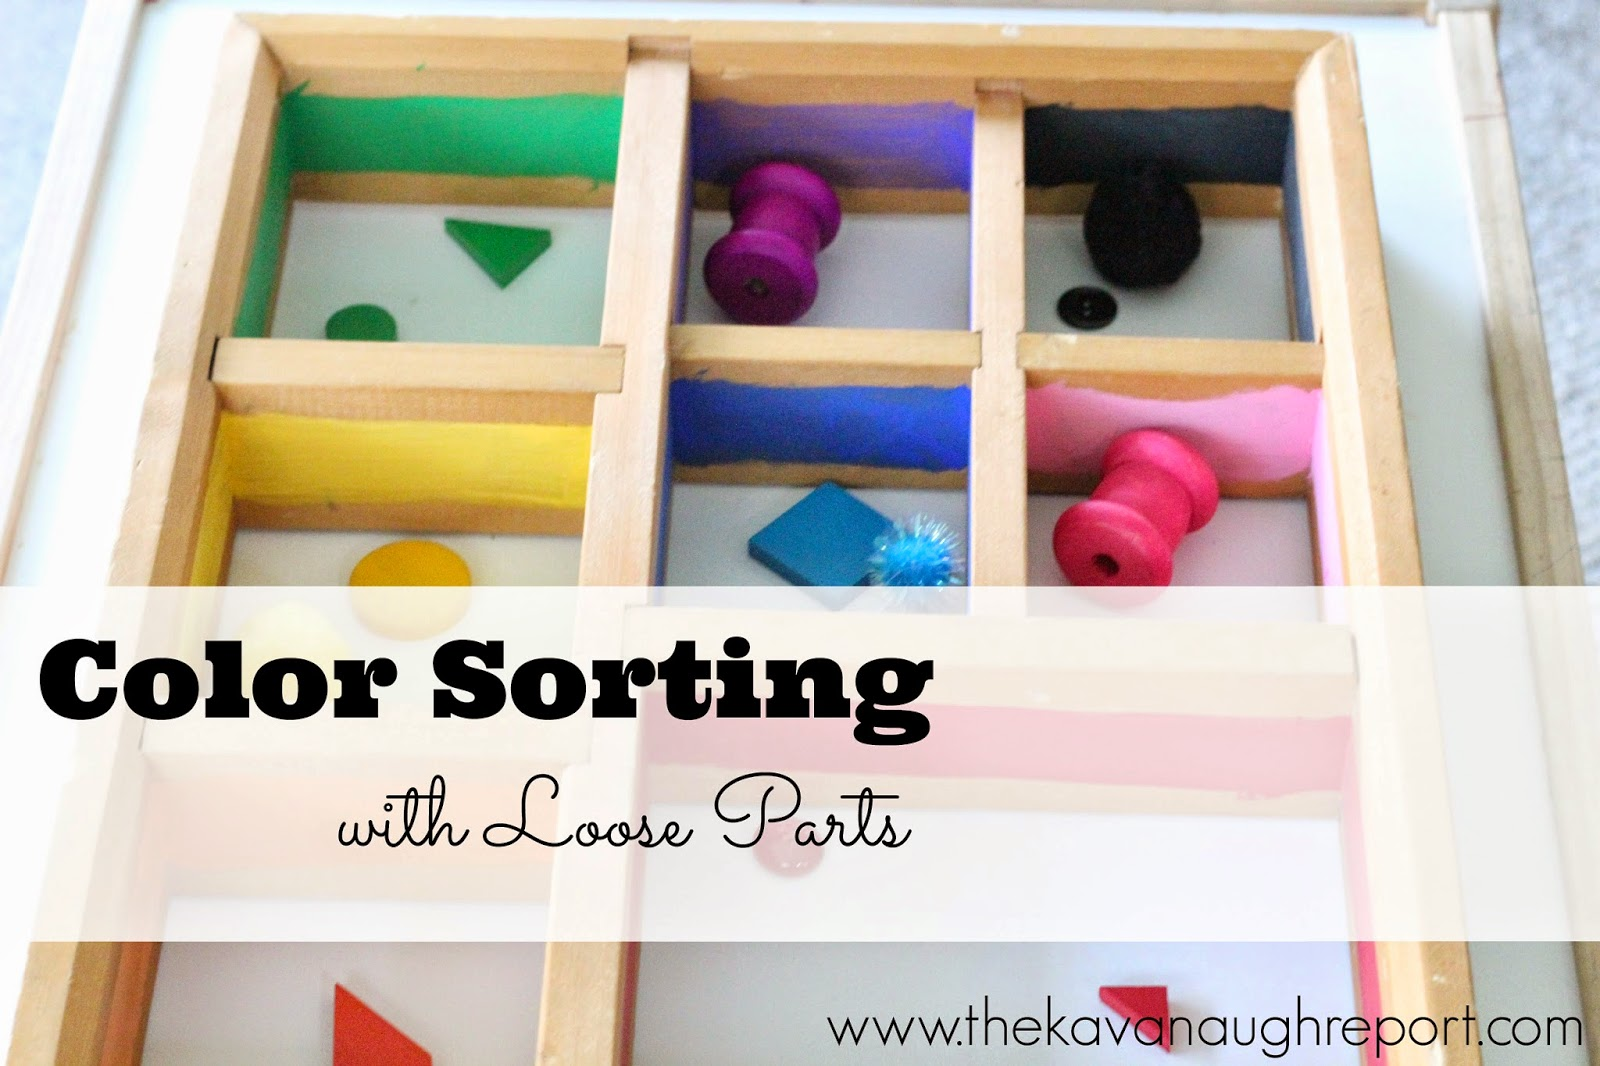 This Montessori inspired idea can help toddlers work on color sorting. Not only are toddlers attracted to the small objects but color sorting is a great way for toddlers to exercise order.